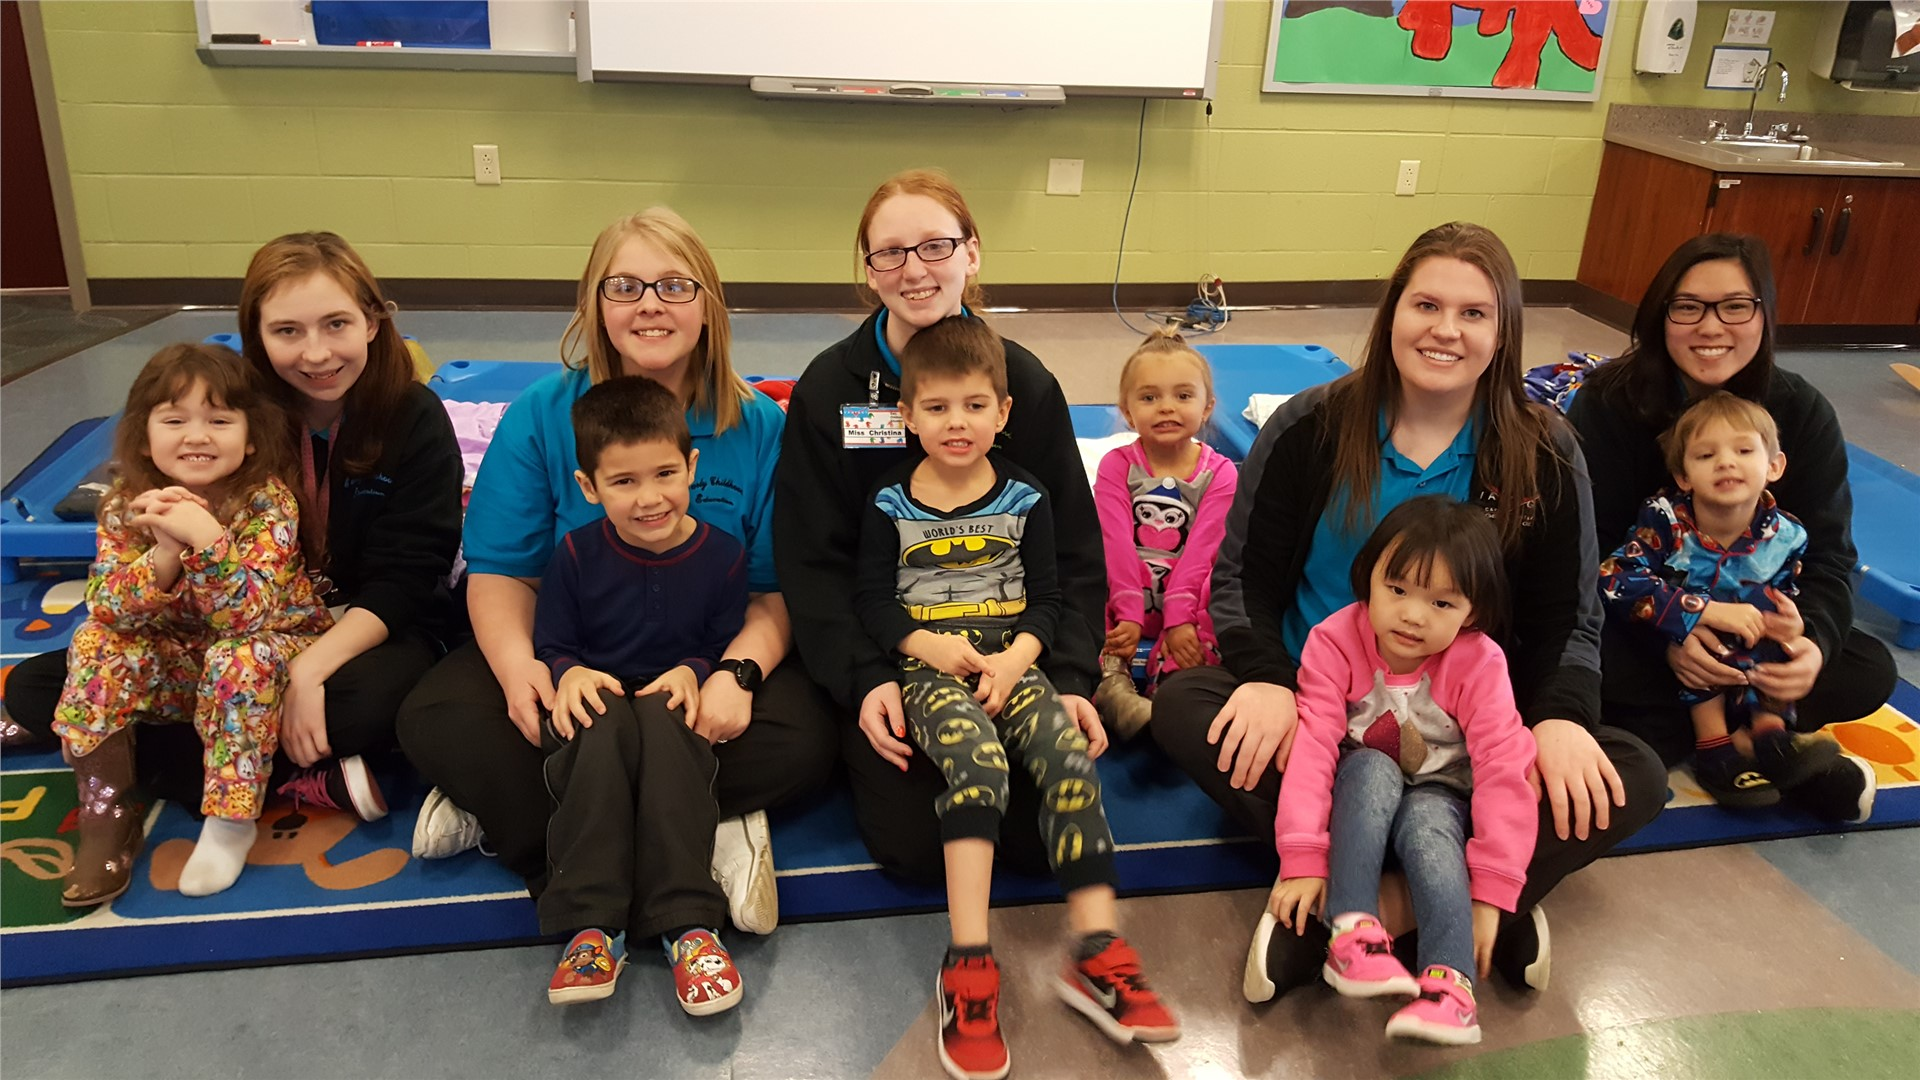 Female Early Childhood Education students sitting on the floor with preschoolers